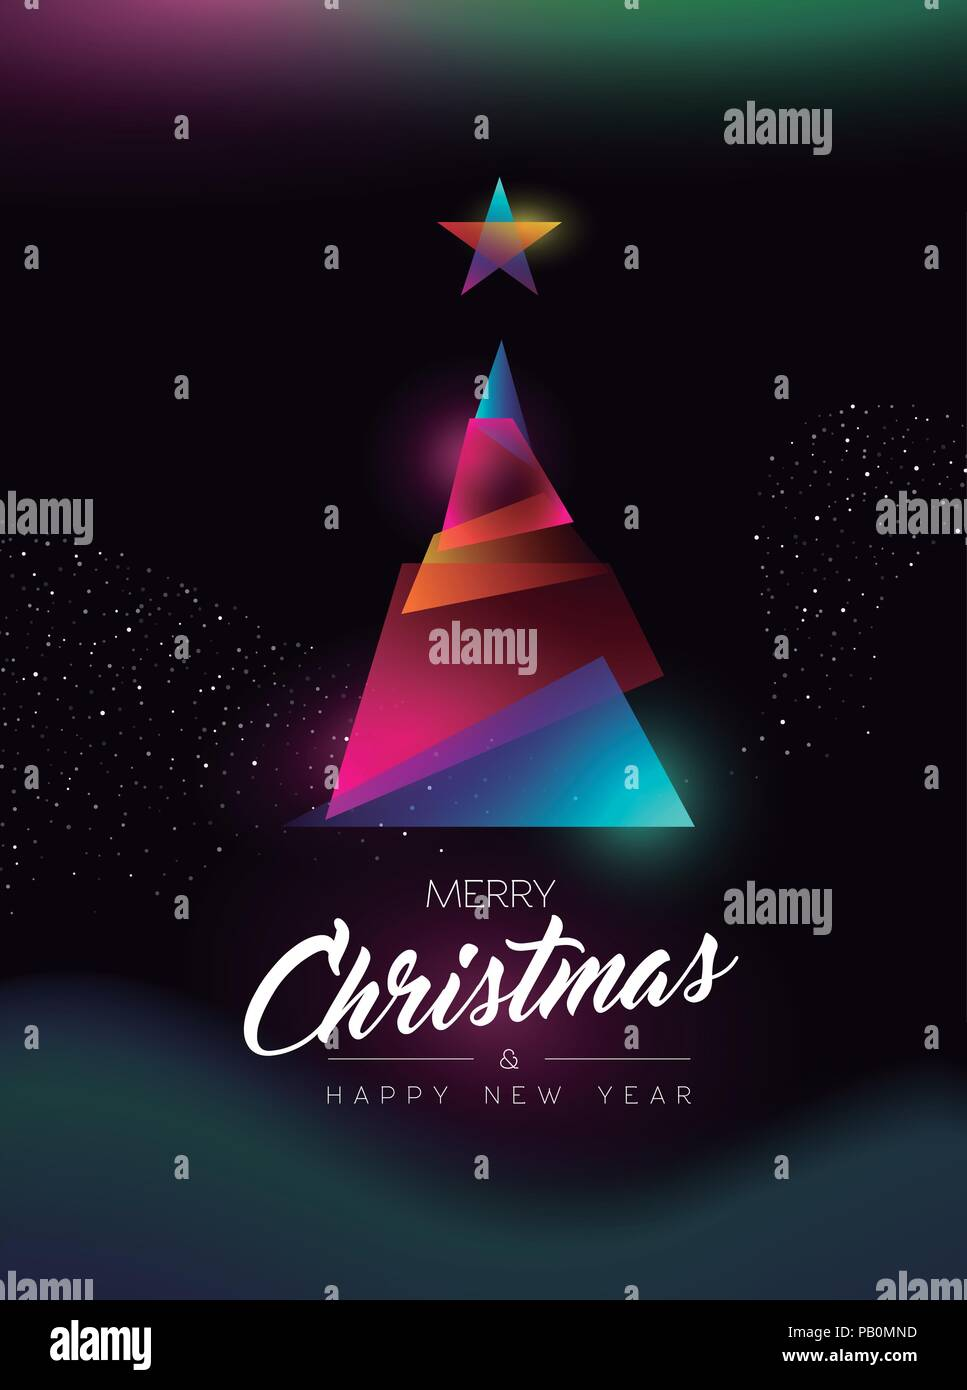 Merry Christmas And Happy New Year Greeting Card Of Colorful Xmas